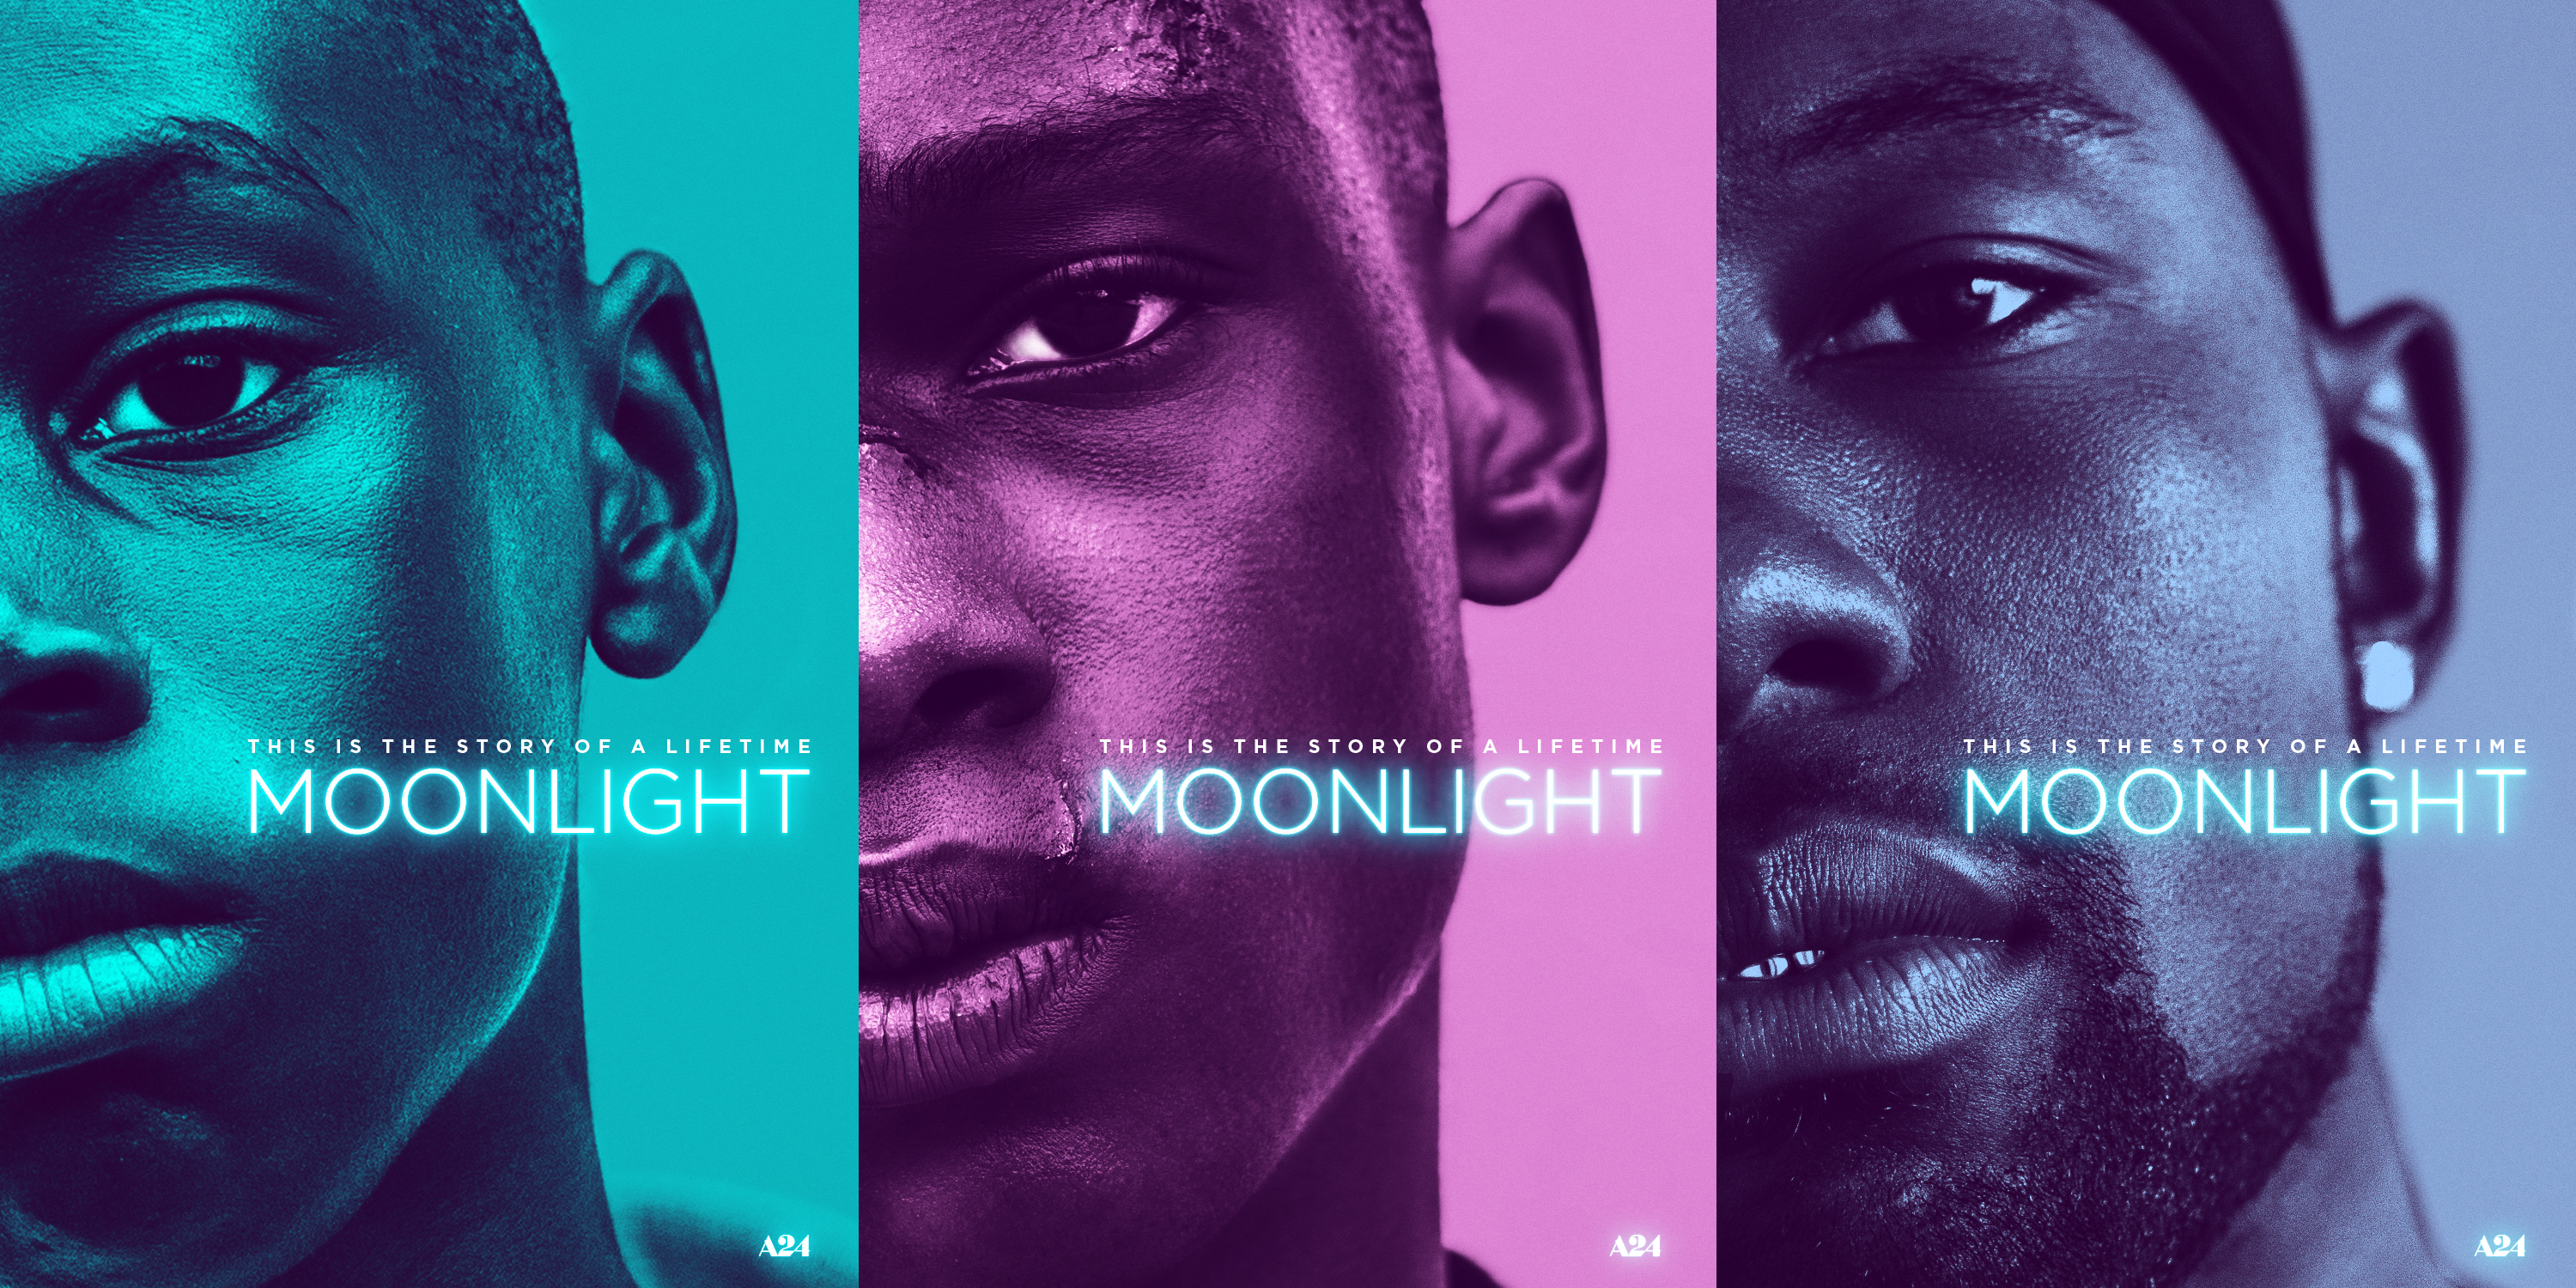 MOONTH-002_Triptych_02_R3 (1)